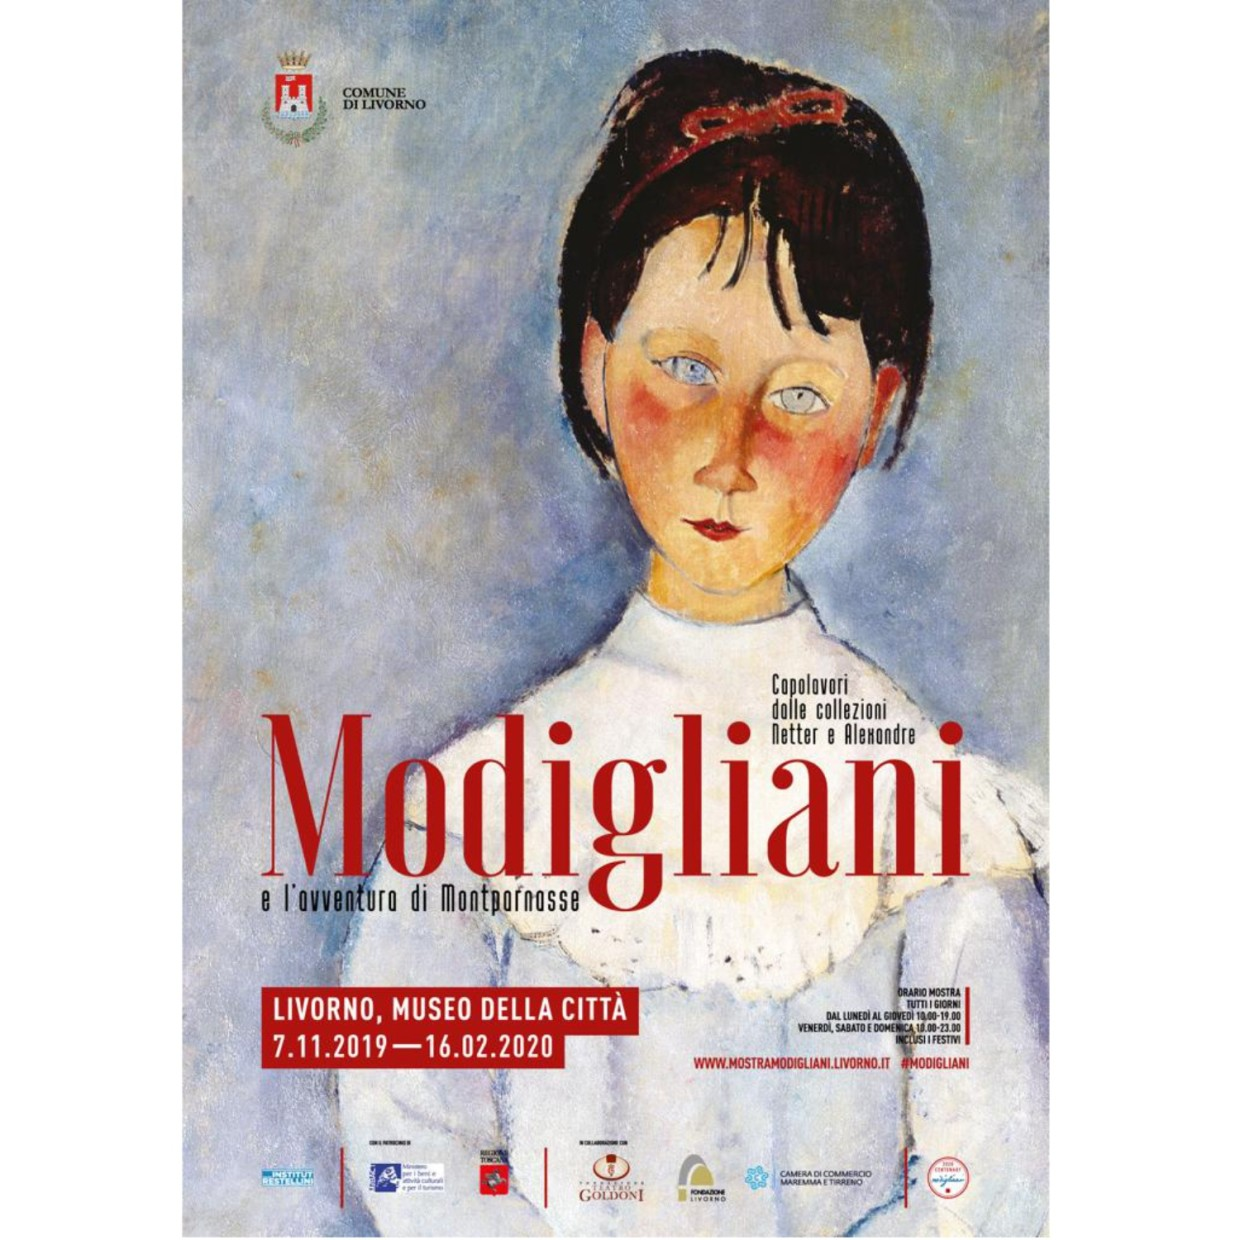 Modigliani and the Montparnasse adventure | Masterpieces from the Netter and Alexandre Collections Museo della Città, Livorno, Italy.